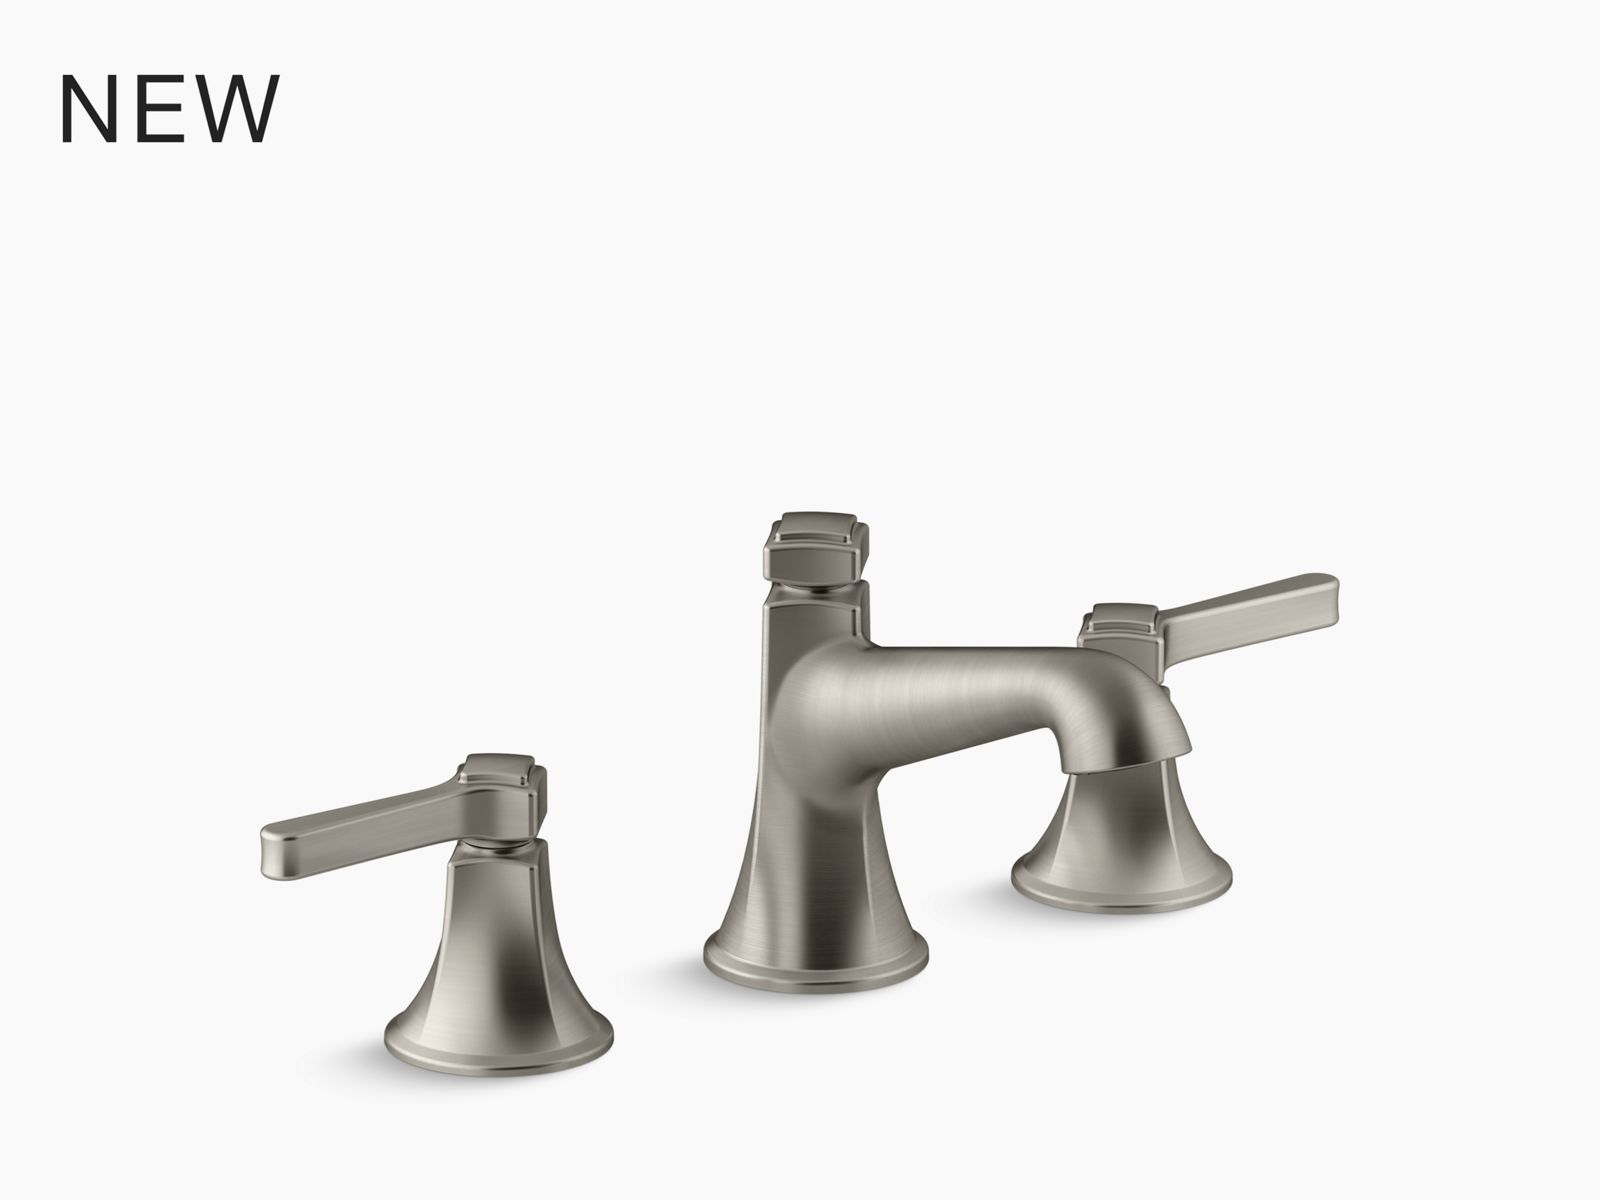 forte 4 hole kitchen sink faucet with 9 1 16 spout matching finish sidespray